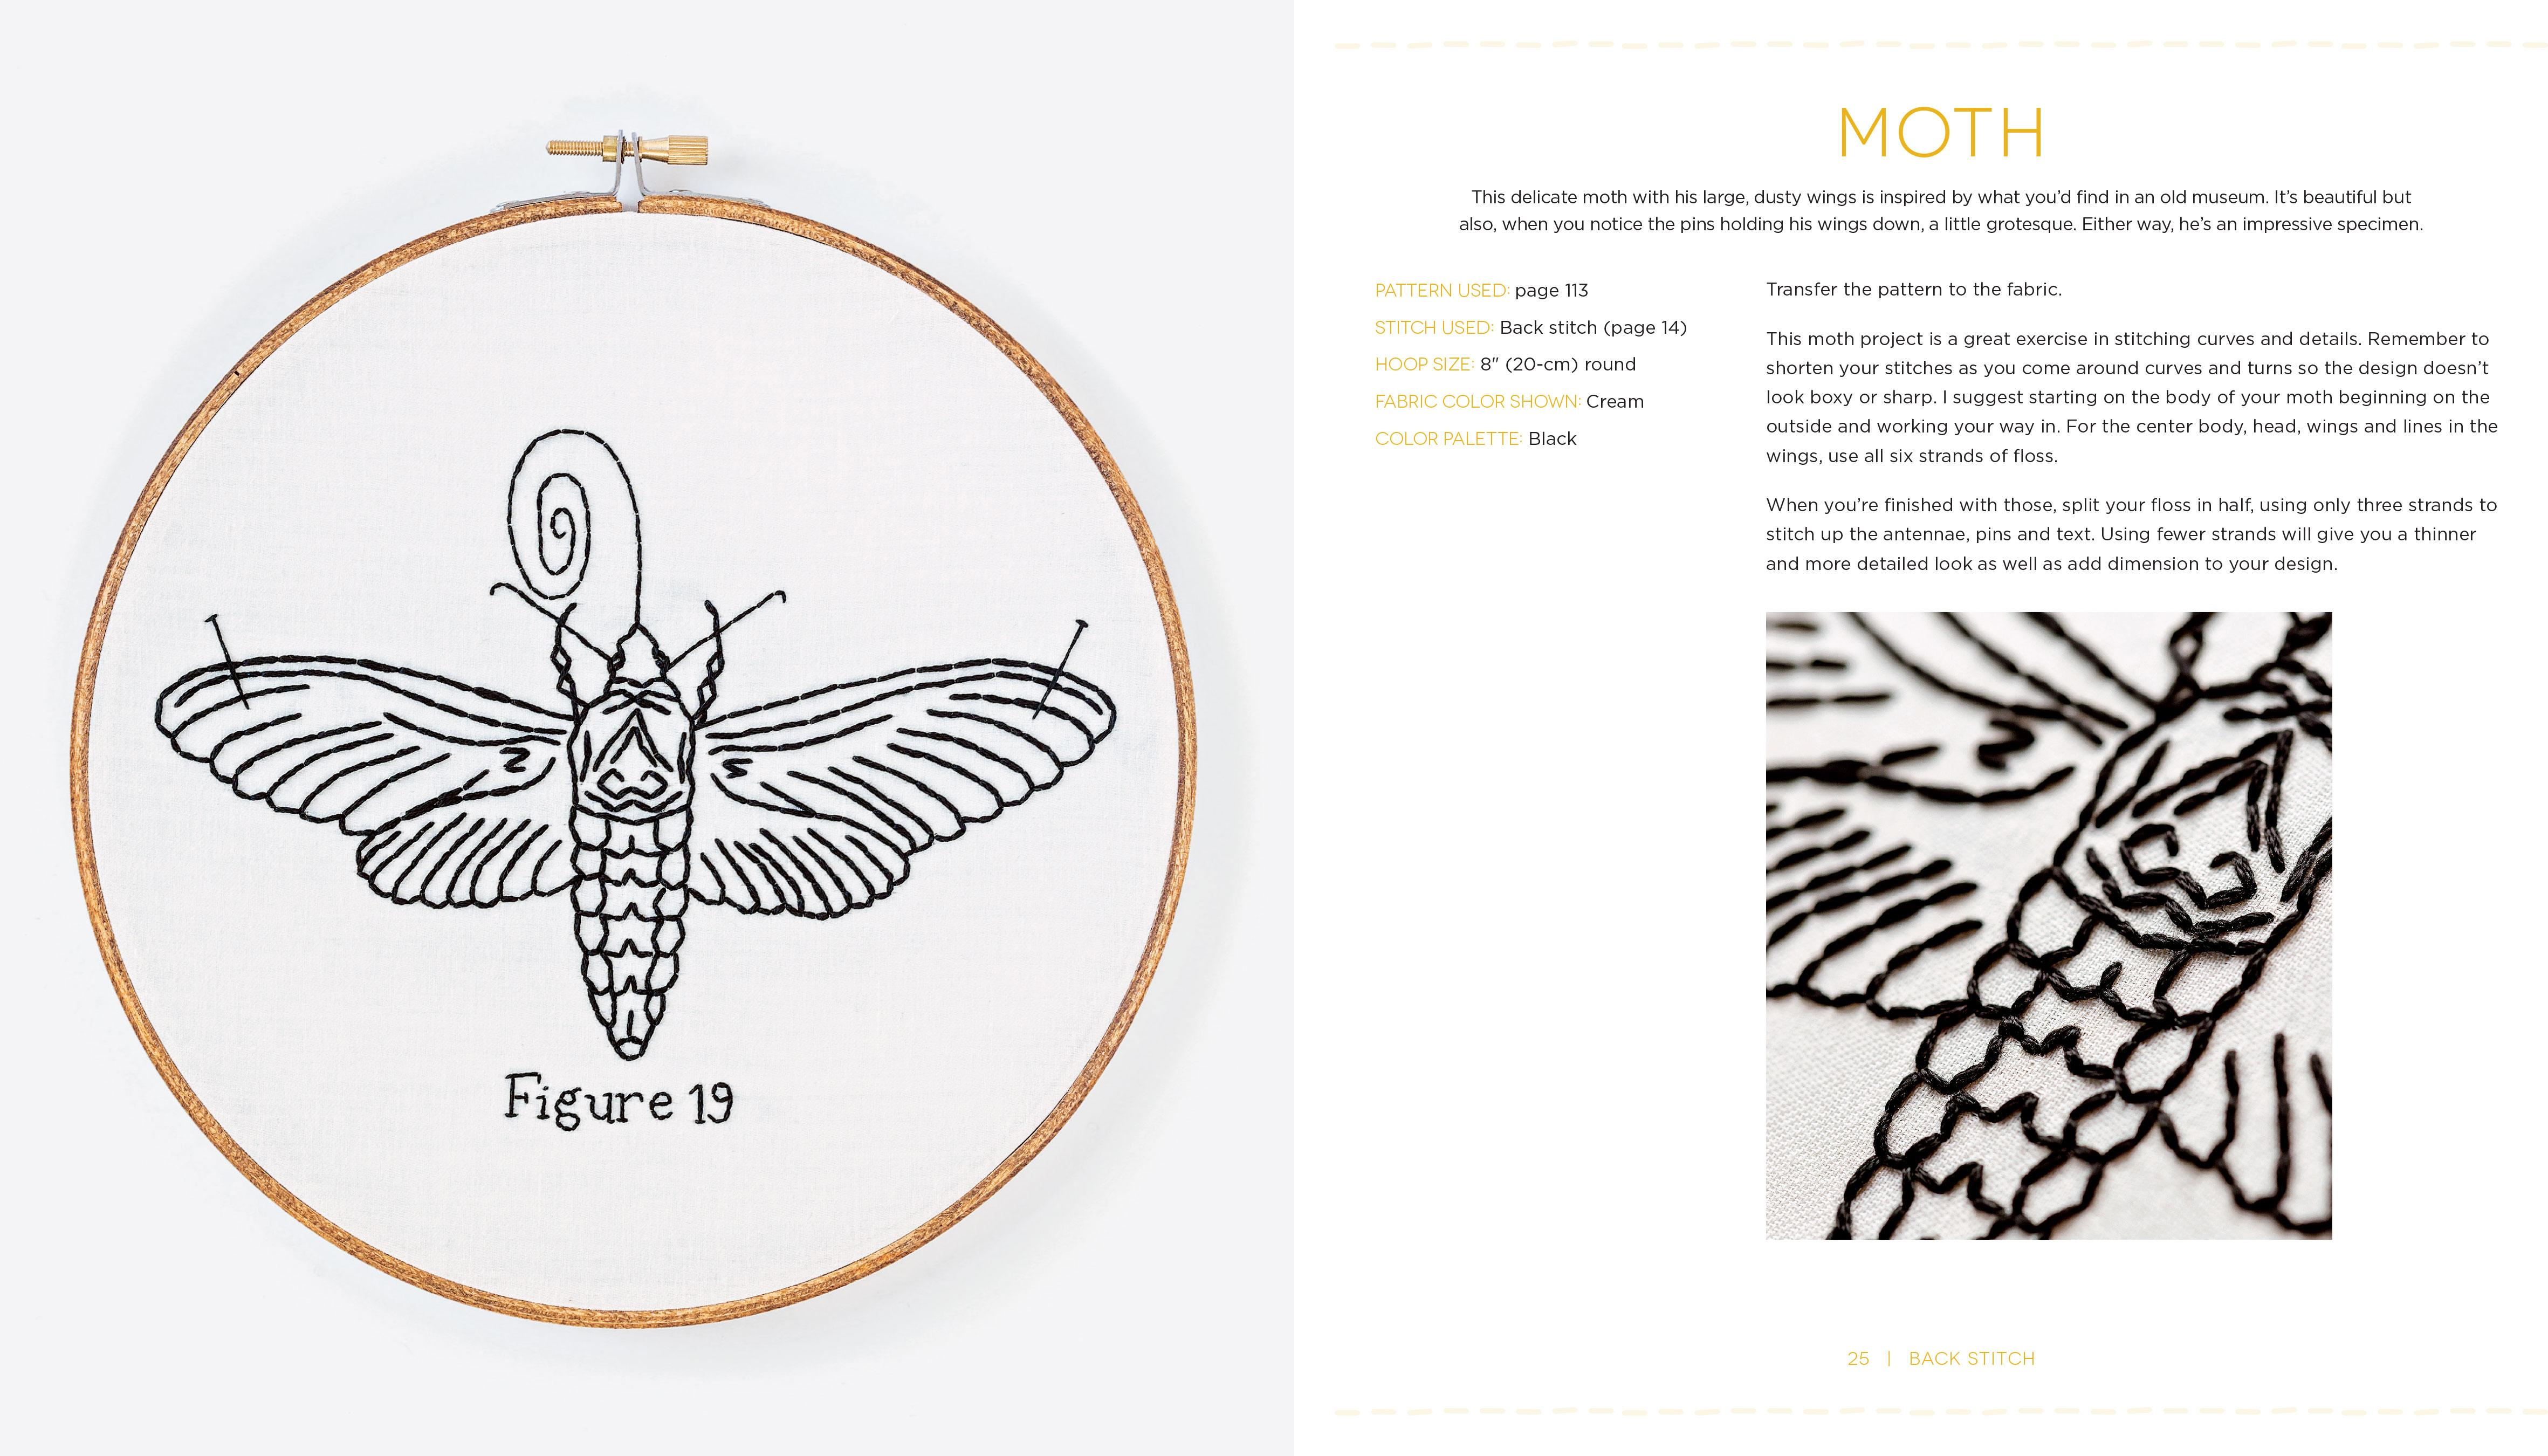 Edgy Embroidery Transform Conventional Stitches Into 25